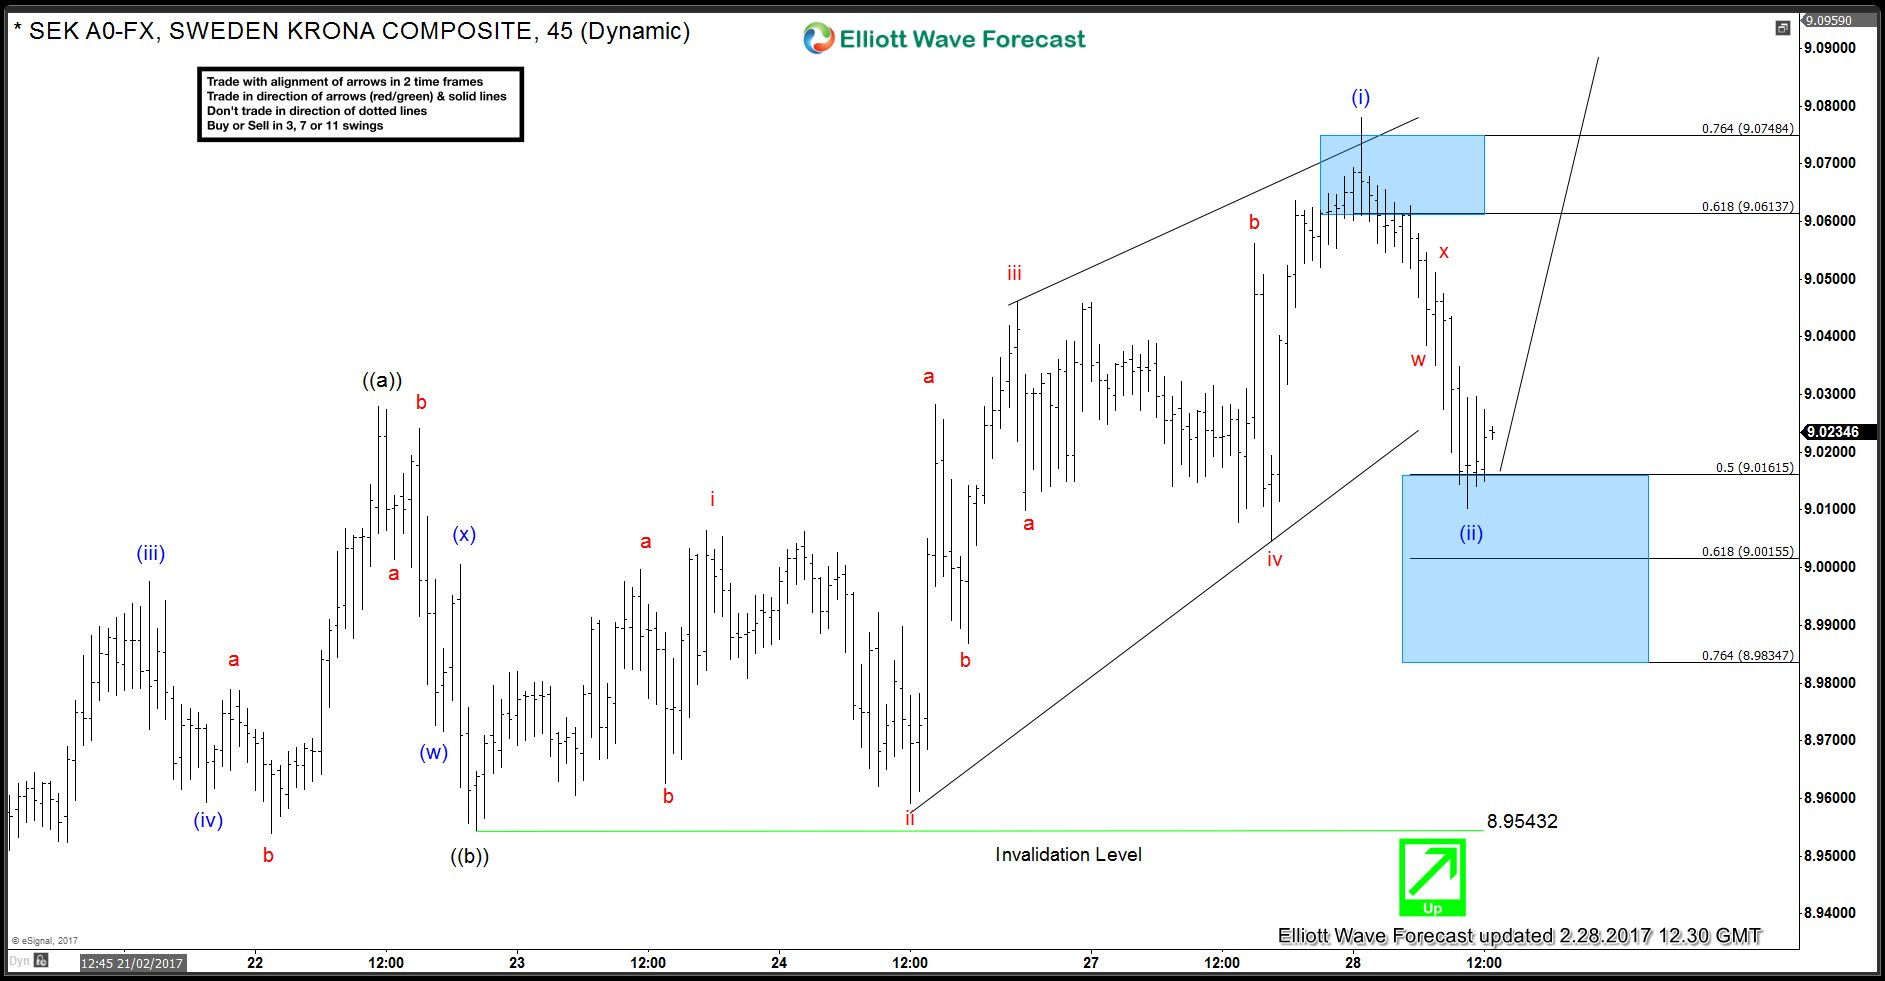 USDSEK Elliott Wave Analysis 2/28 12:30 GMT